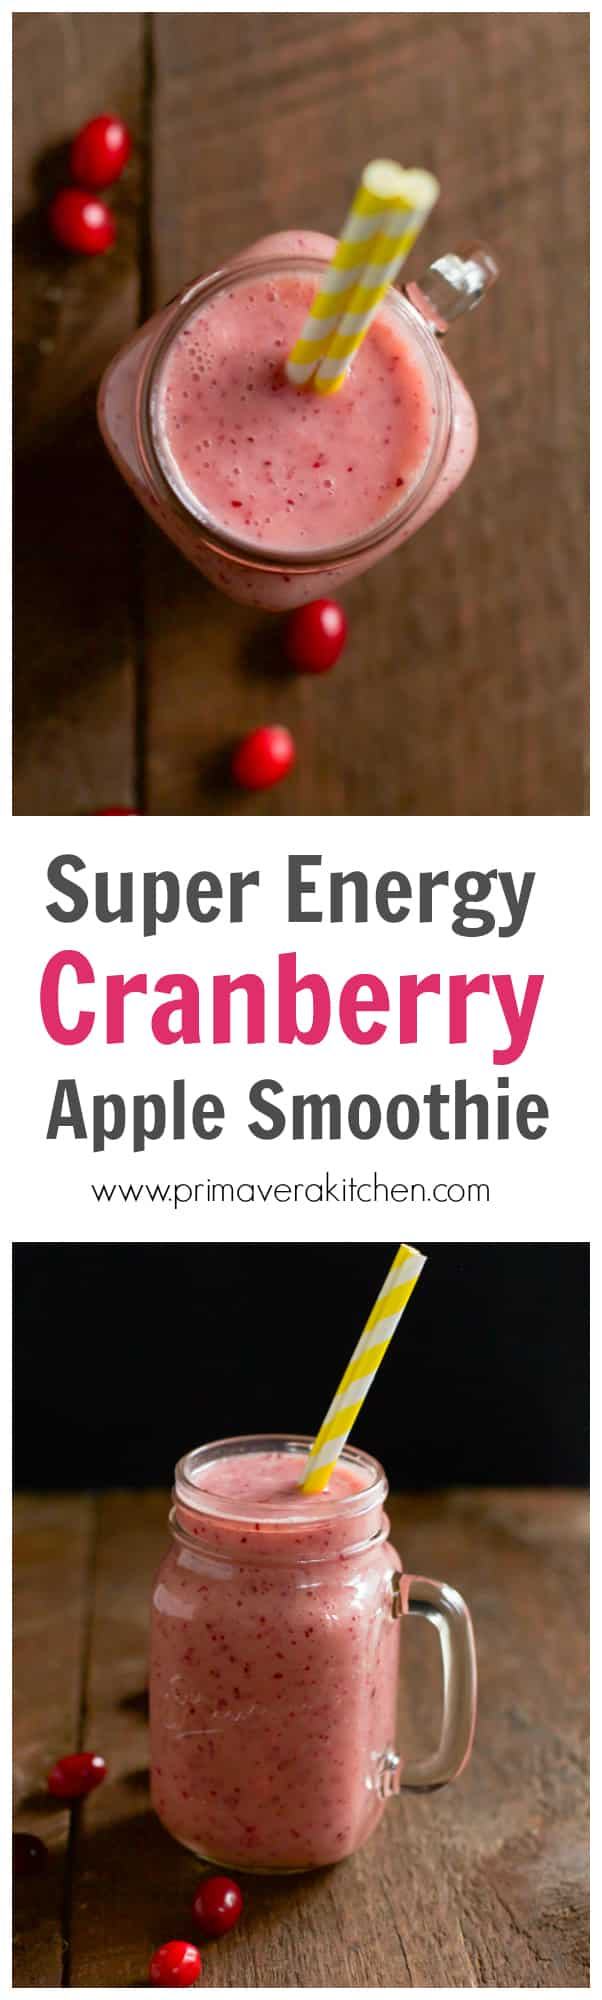 Boost your energy in the morning with this Super Energy Cranberry Apple Smoothie that combines the tartness of the cranberry with the sweetness of the apple, the flavor of the coconut milk and a pinch of cinnamon. This is a perfect way to start your day during wintertime!